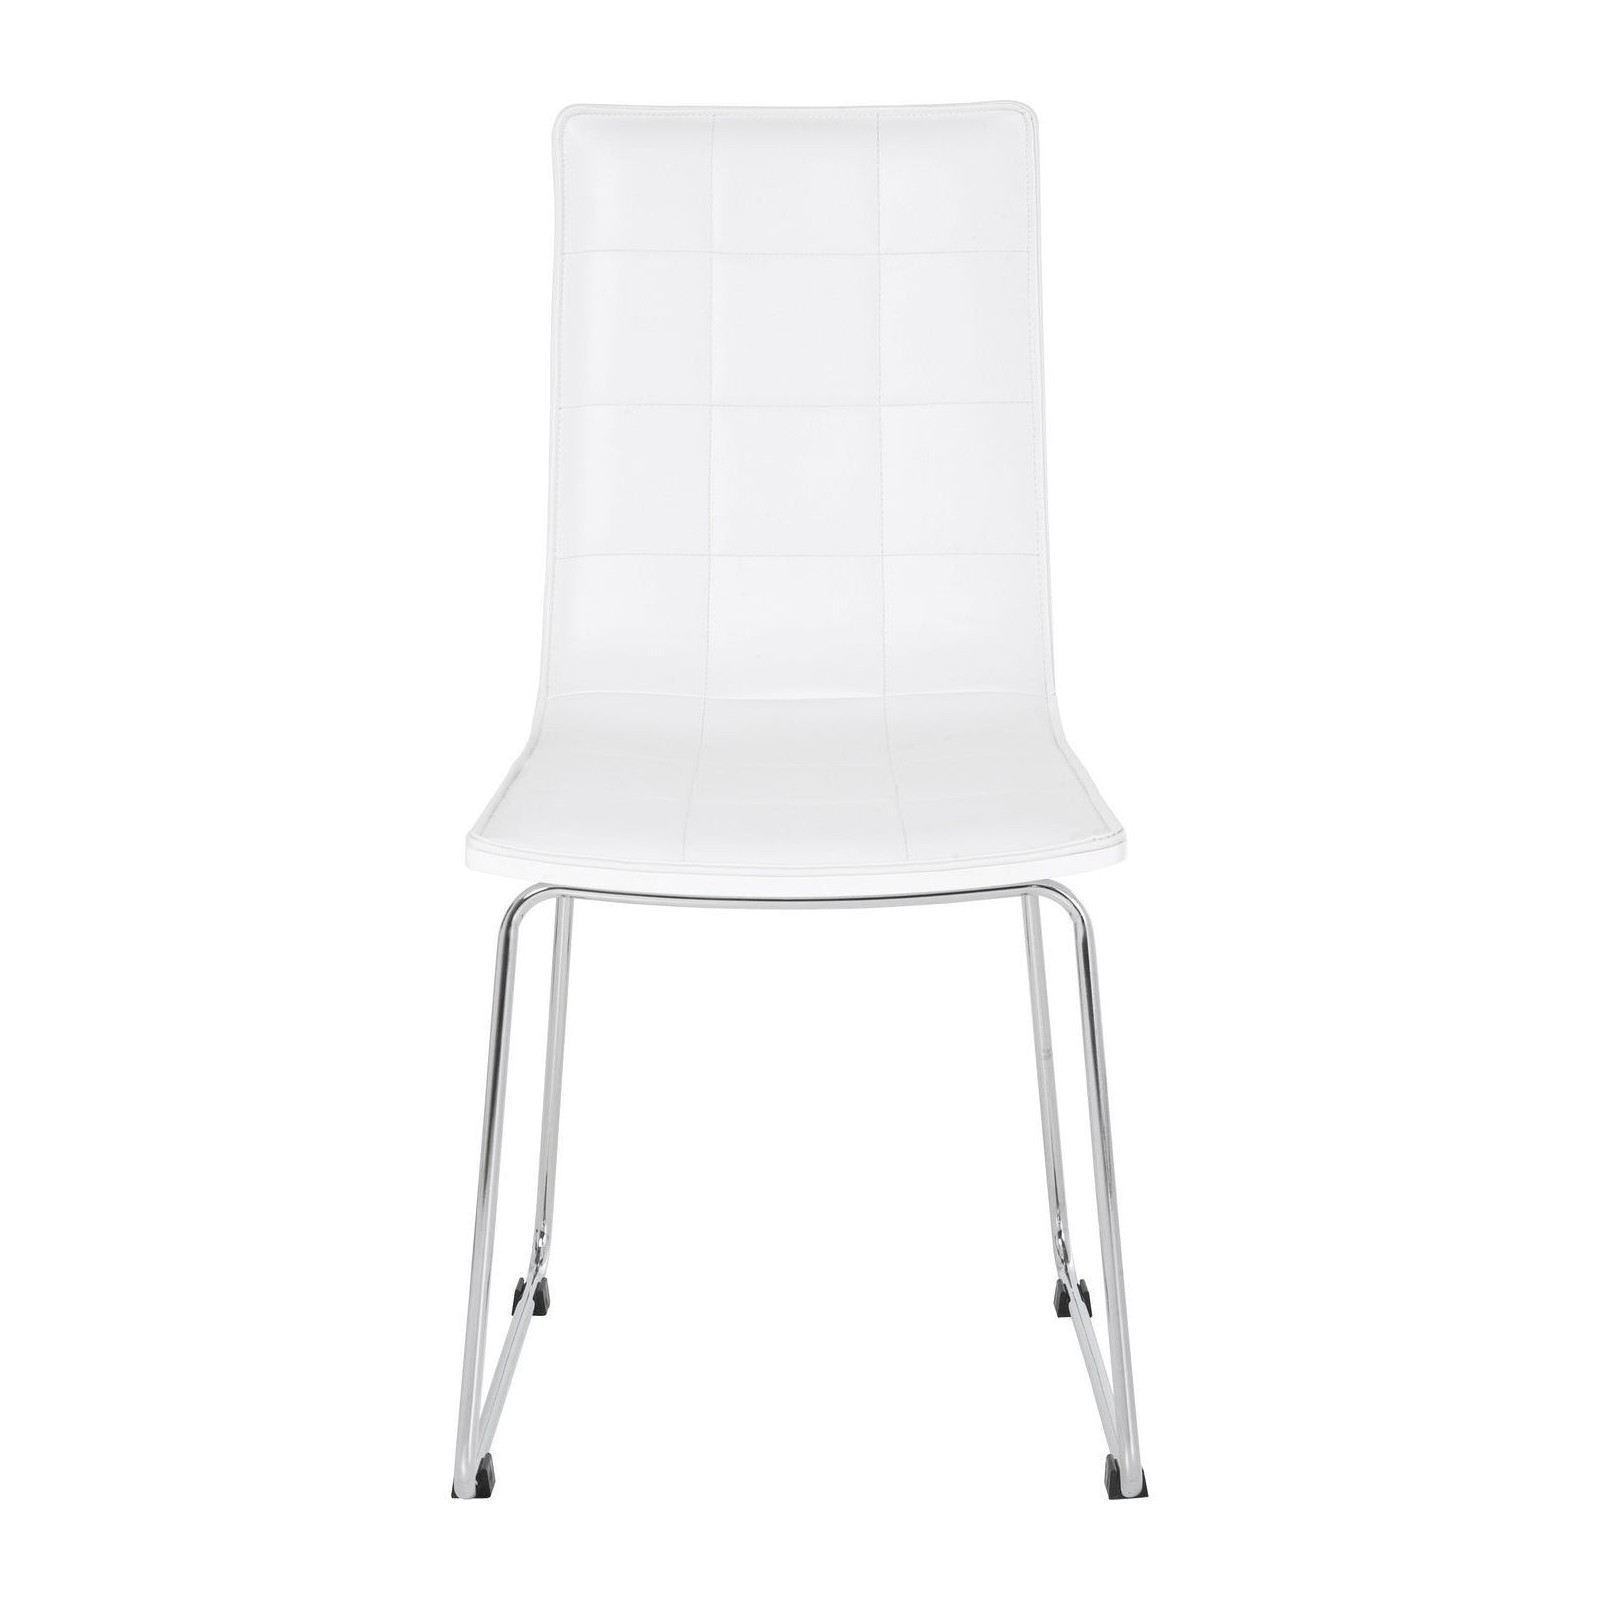 Chaise Blanche Cdiscount Chaise Design Blanche Chaise Design Scandinave Blanche